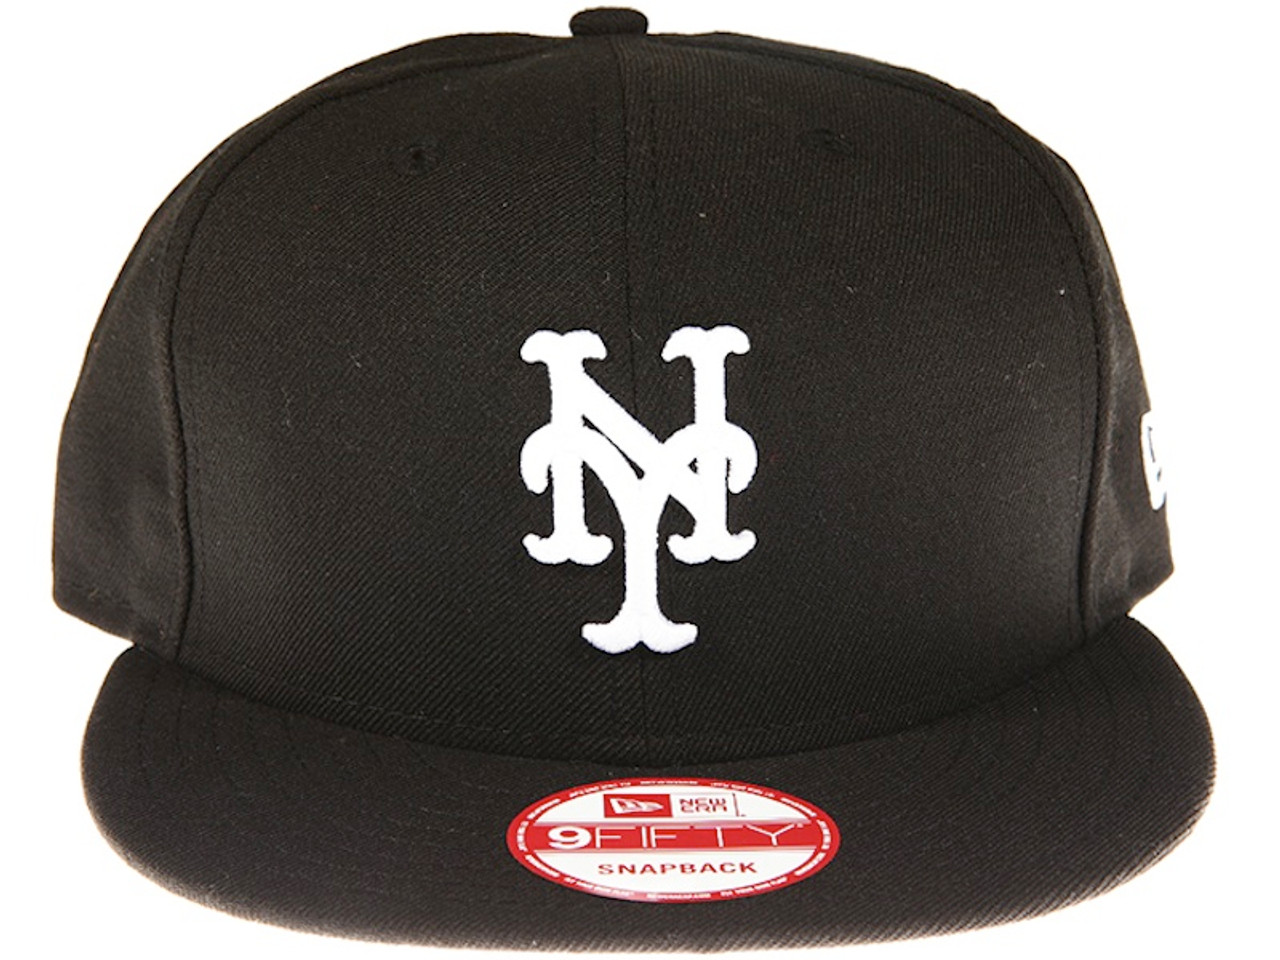 detailed look 74a84 26bc7 New York Mets Black New Era 9FIFTY MLB Snapback Hat